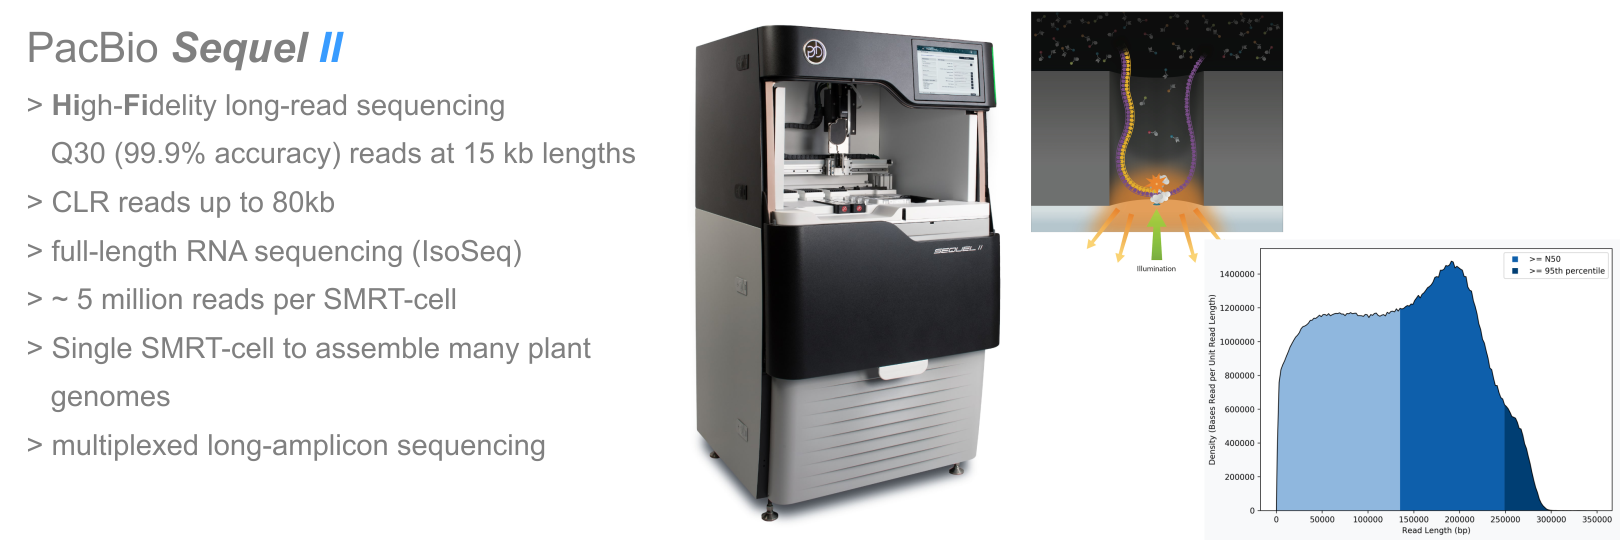 PacBio Sequel II single-molecule sequencer